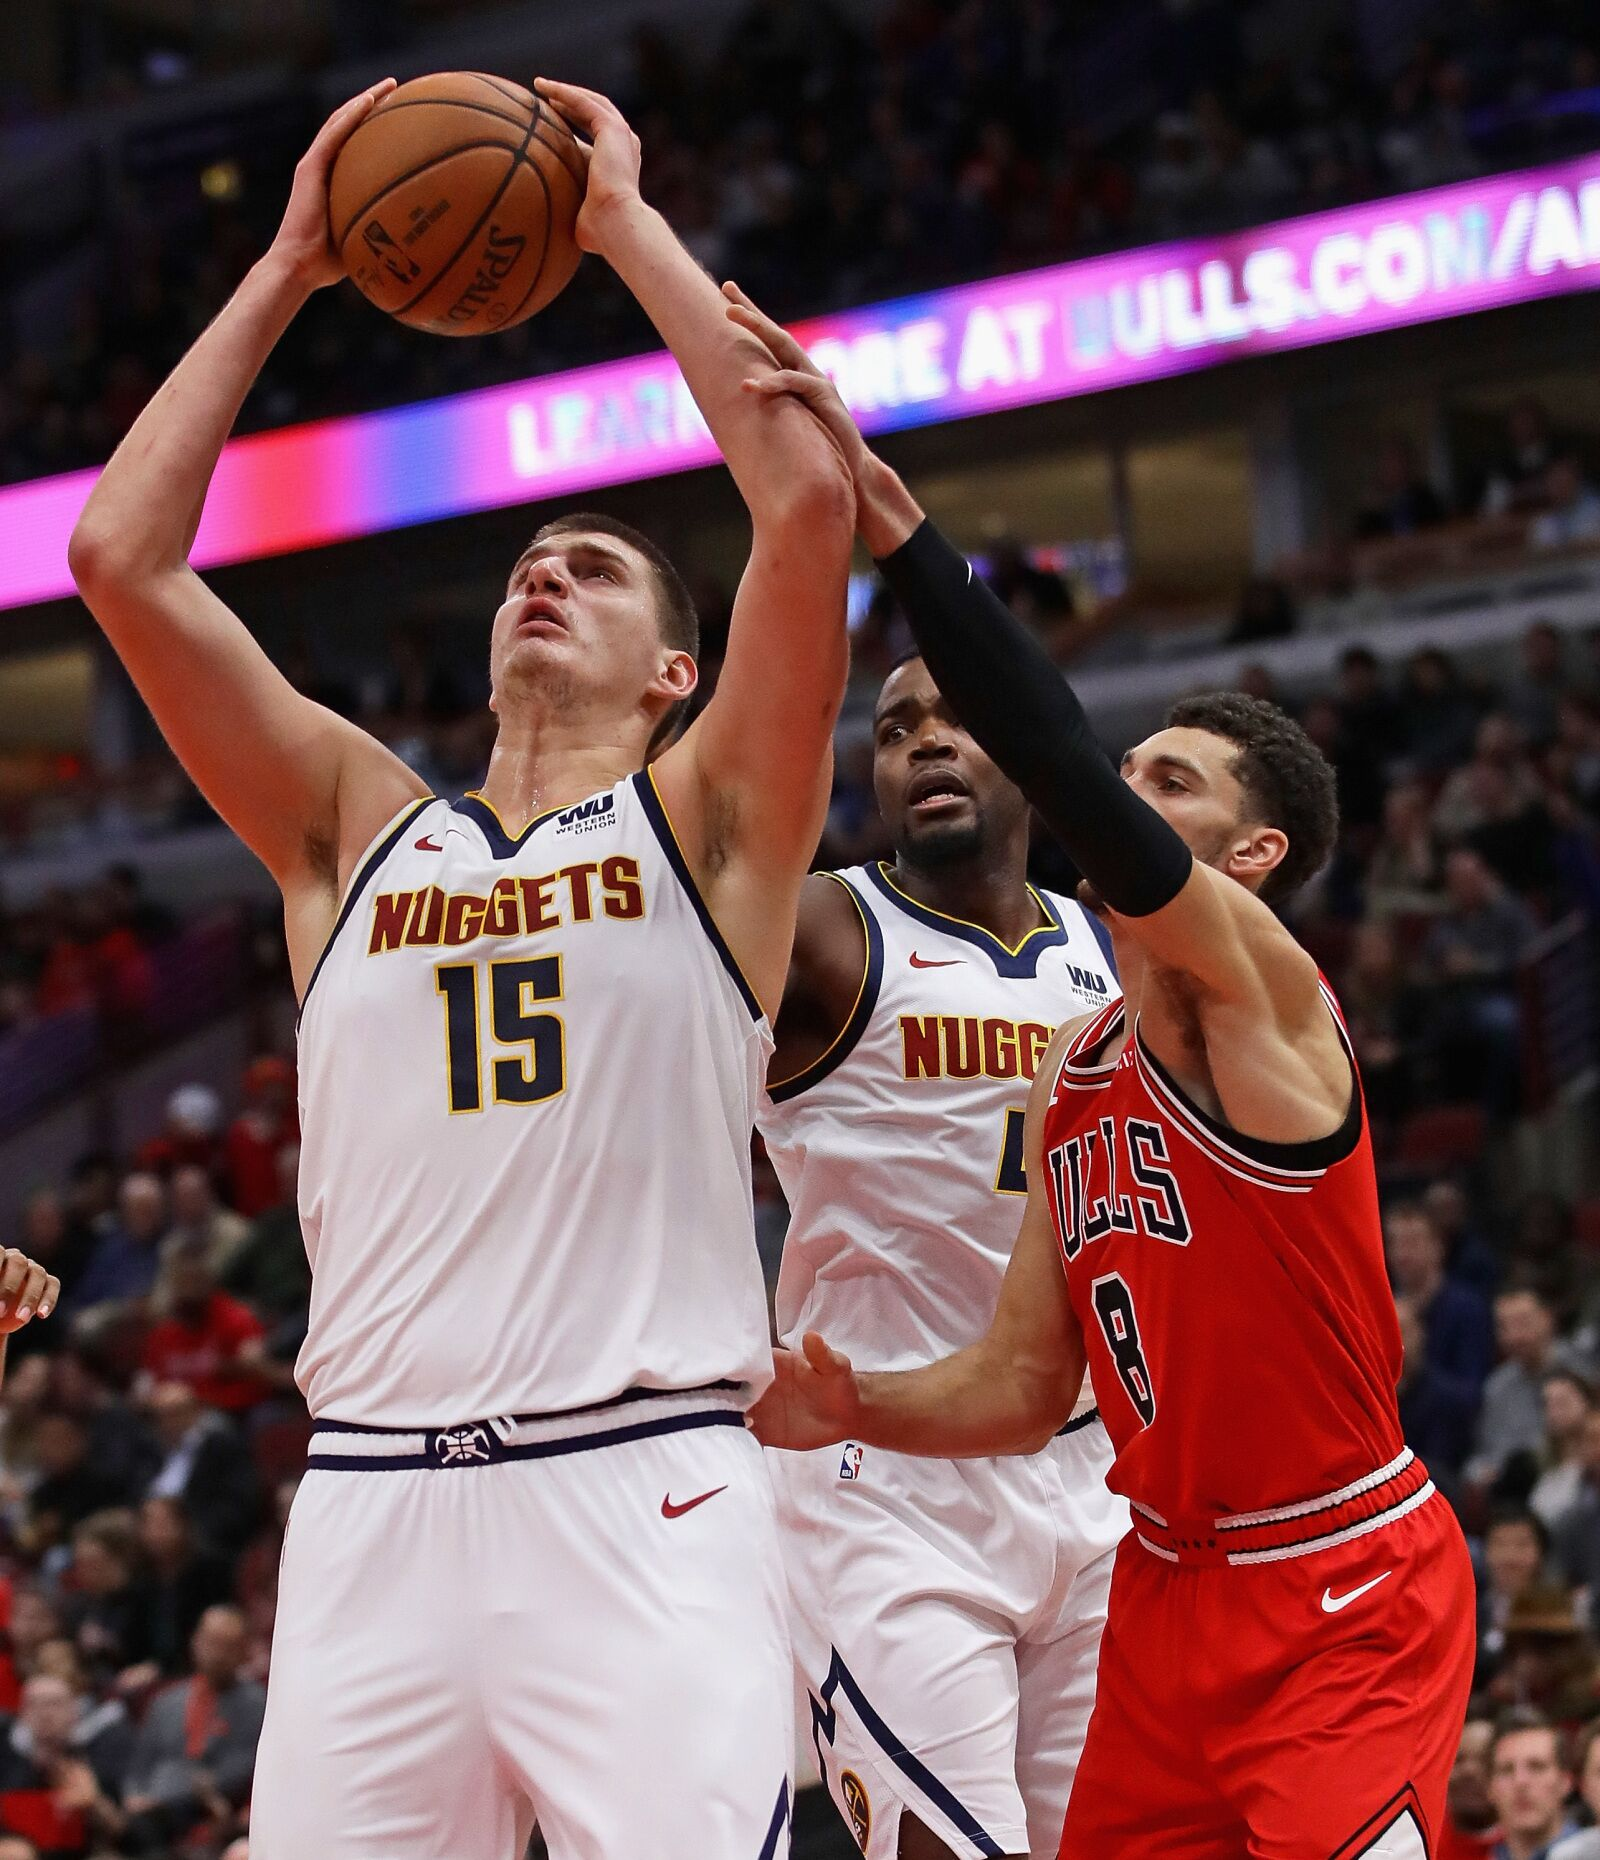 Nuggets Rumors: Denver Nuggets: Player Of The Game In Victory Over Bulls